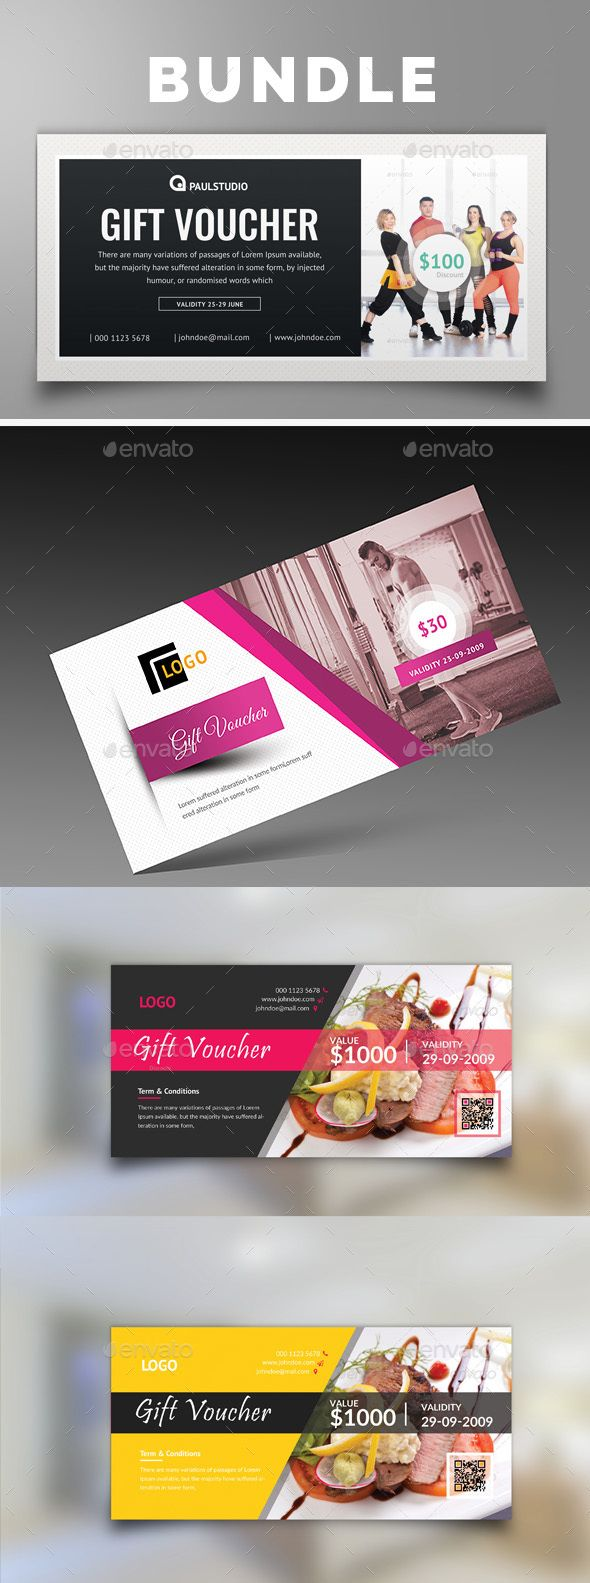 9 best gift card design images on pinterest gift cards gift gift bundle by paulresume yadclub Images